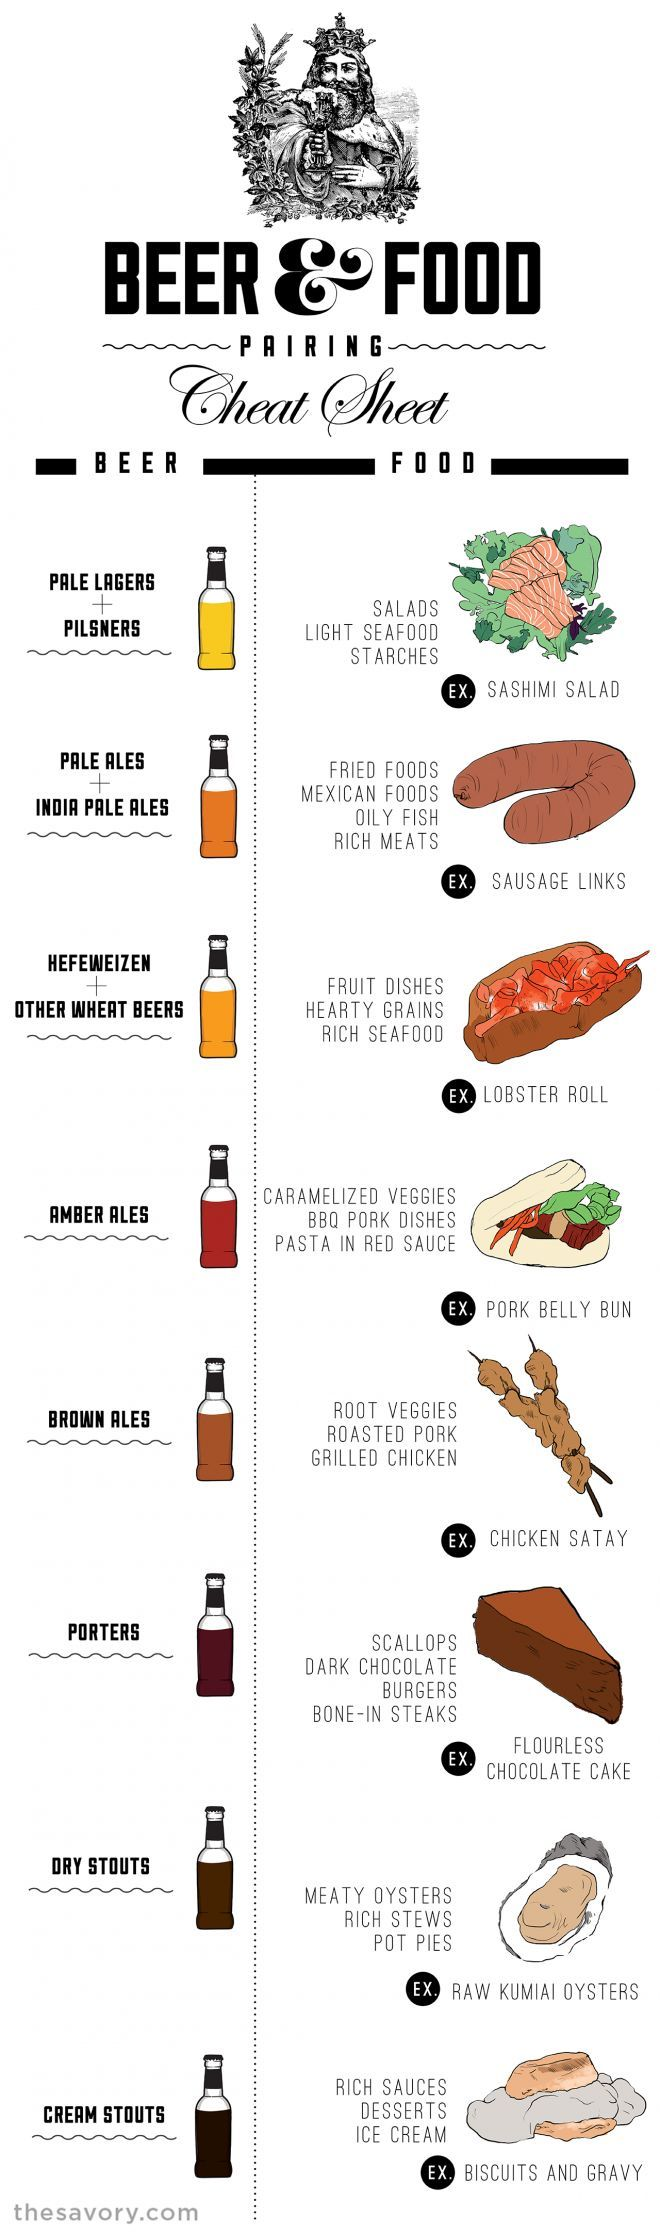 Today's infographic is entitled the Beer & Food Cheat Sheet, and was created by The Savory. It shows eight basic kinds of beer and makes some suggestions of three or four basic foods that they think pairs with each, along with some additional tips below the infographic. CLick here to see the chart full size.